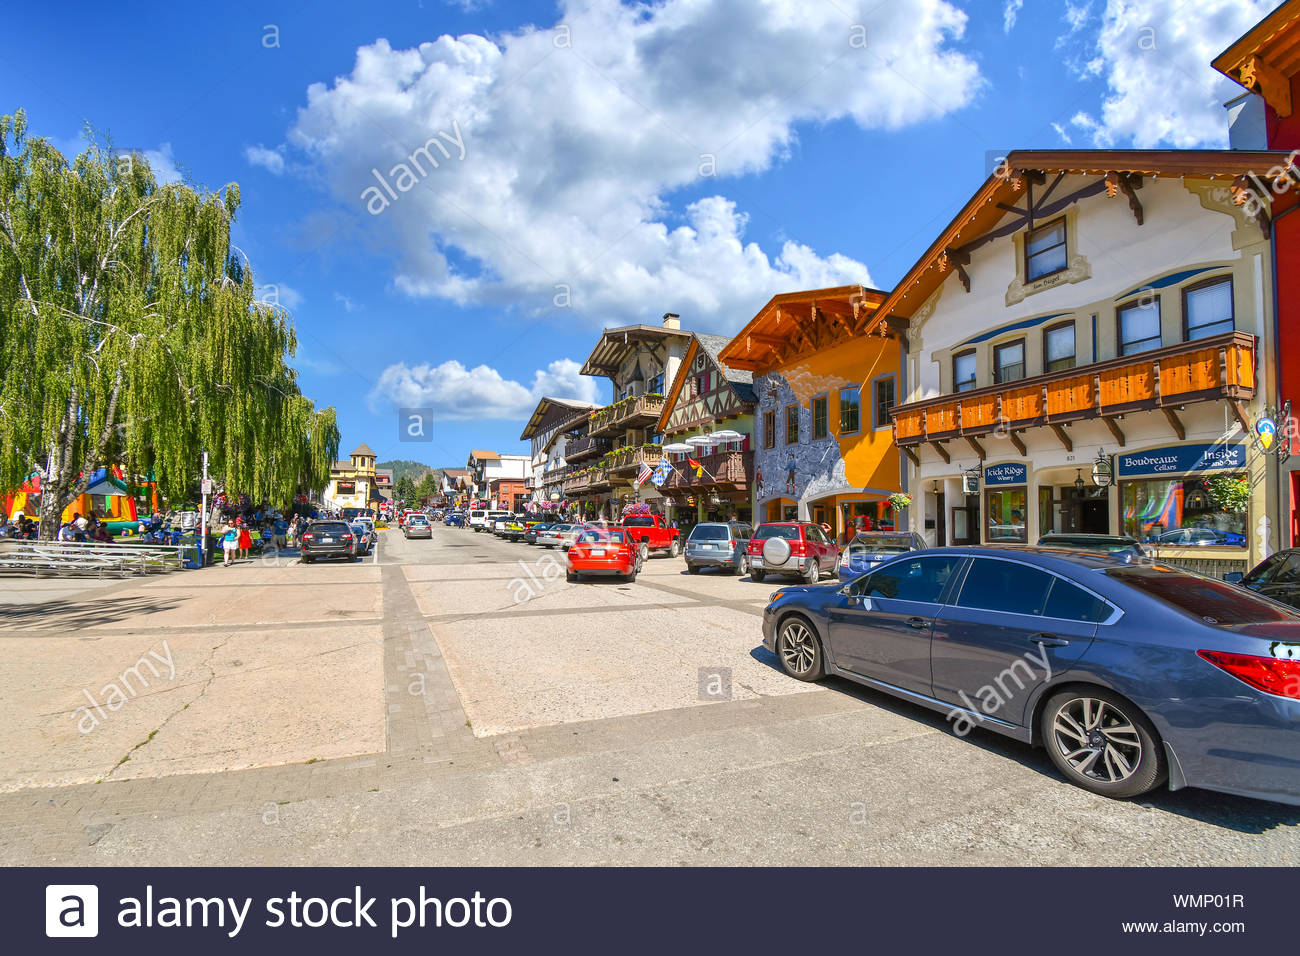 Cars and tourists fill the main street through the Bavarian themed town of Leavenworth, Washington, United States. Stock Photo